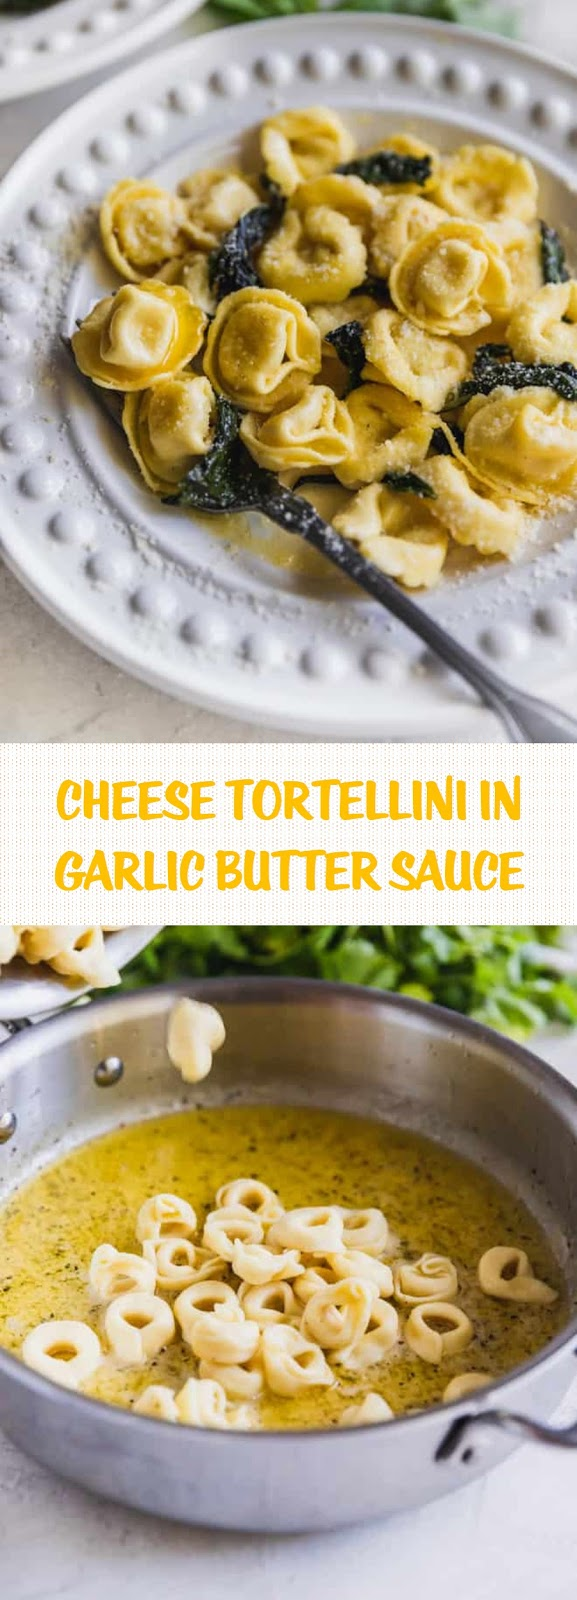 Cheese Tortellini in Garlic Butter Sauce